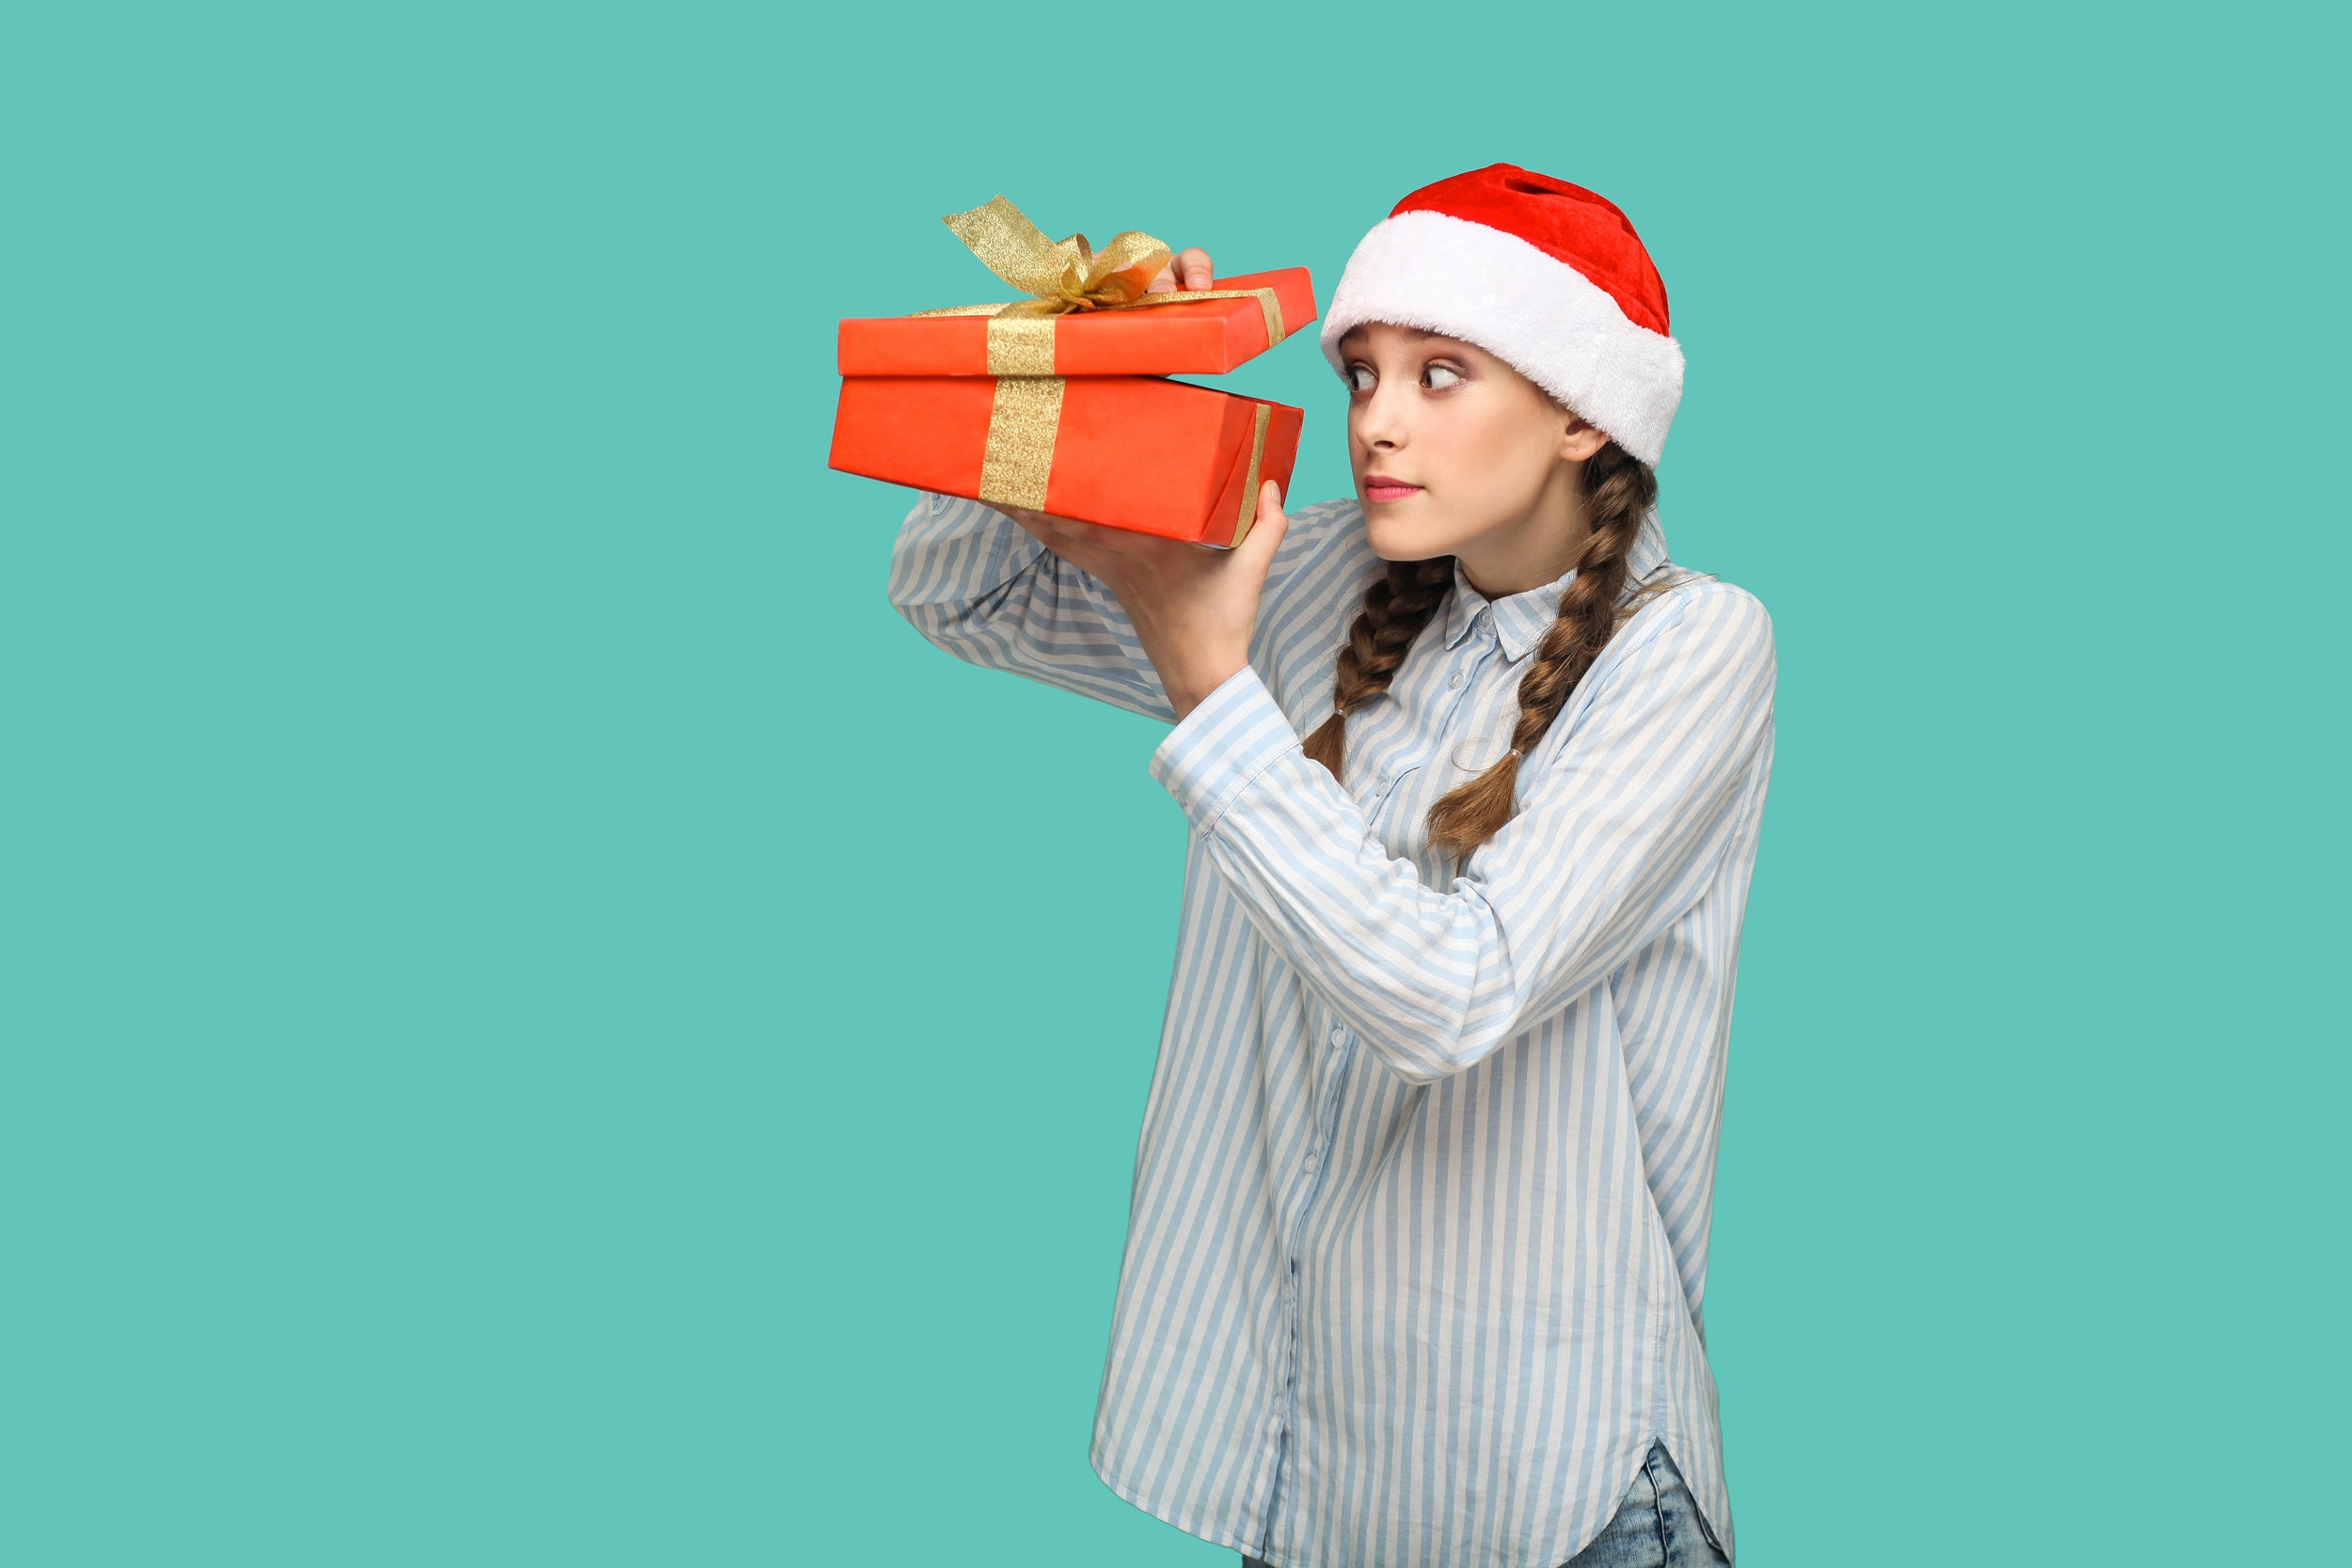 What Christmas Gifts Are Best for Teens This Holiday?